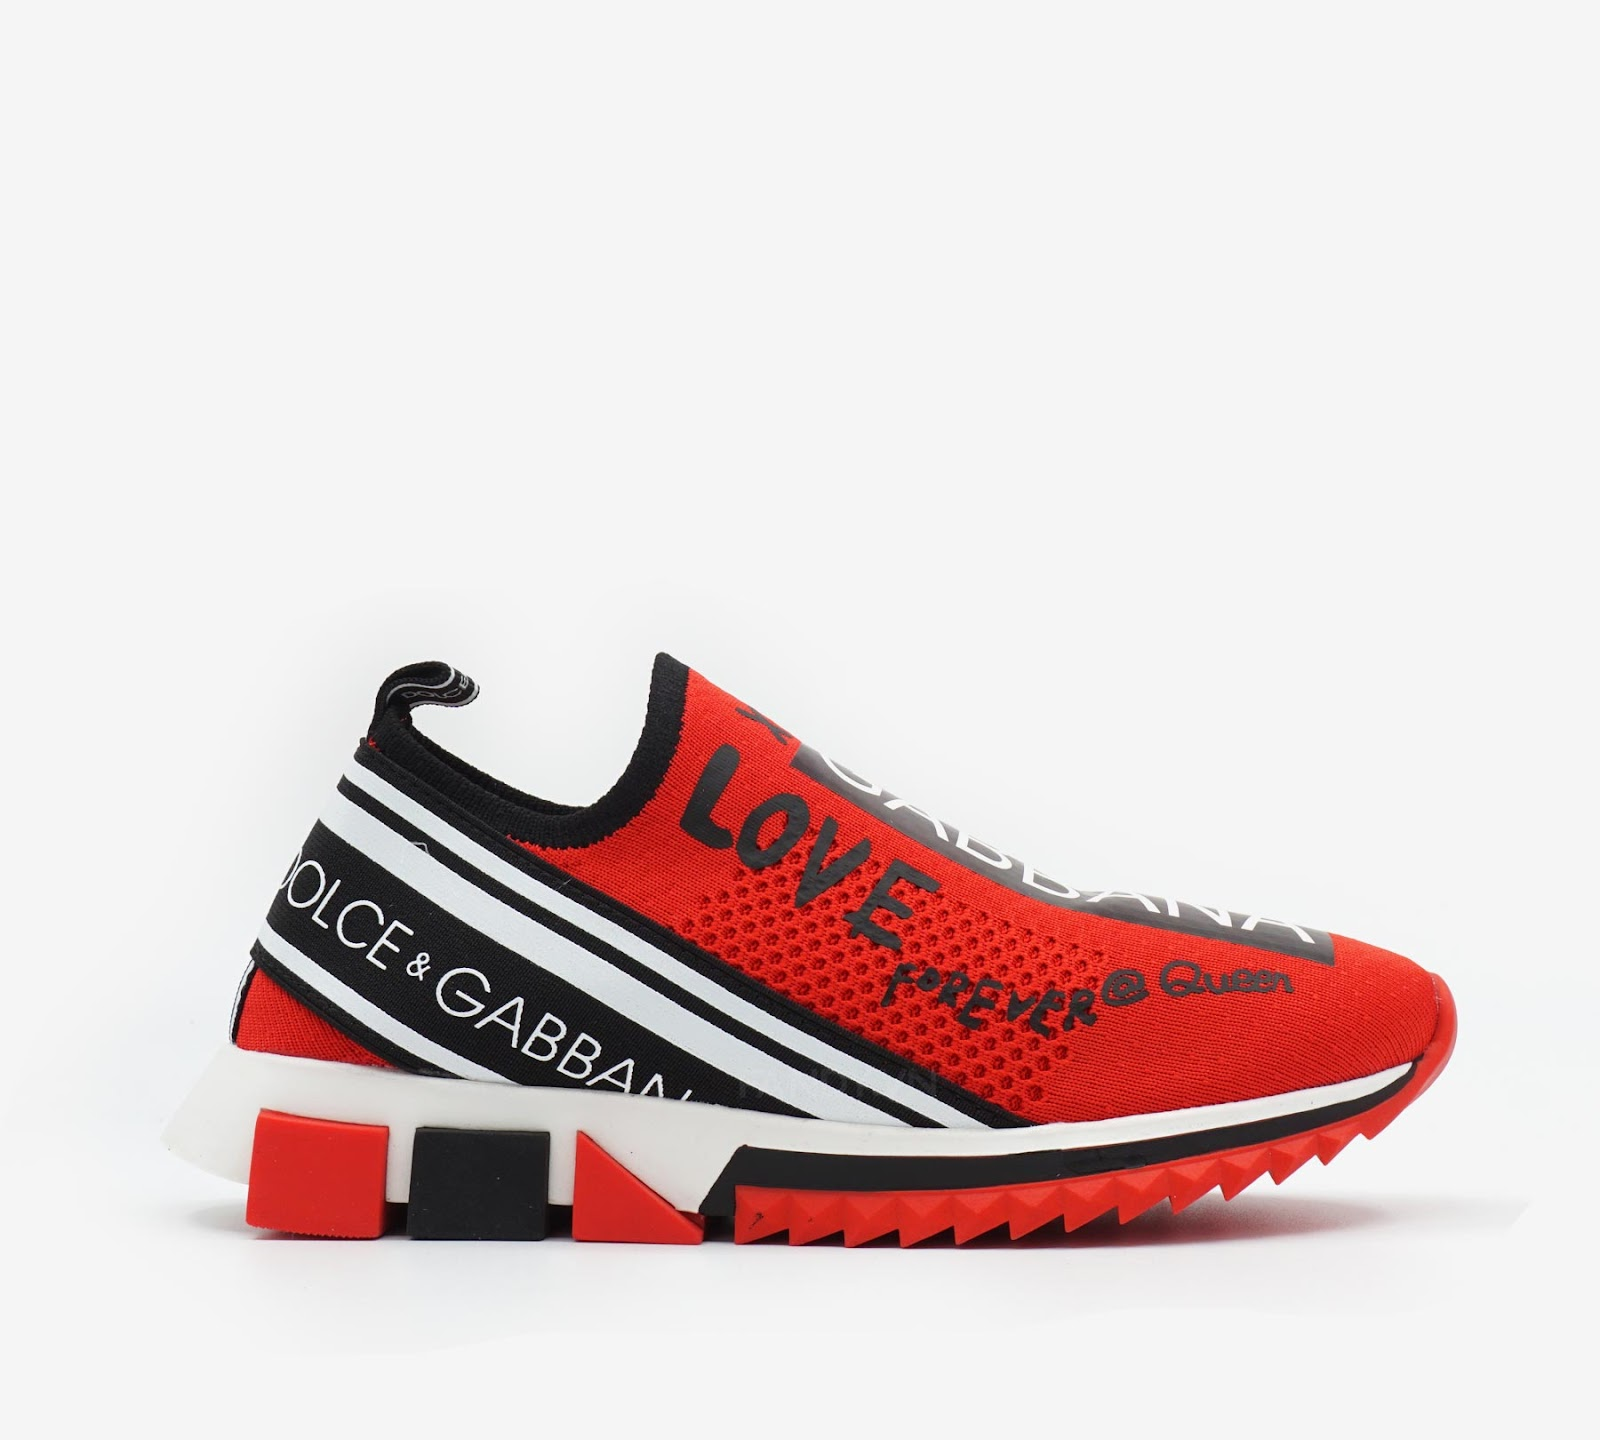 "Giày Dolce & Gabbana Sneakers In Sorrento Graffiti Print "" Red """